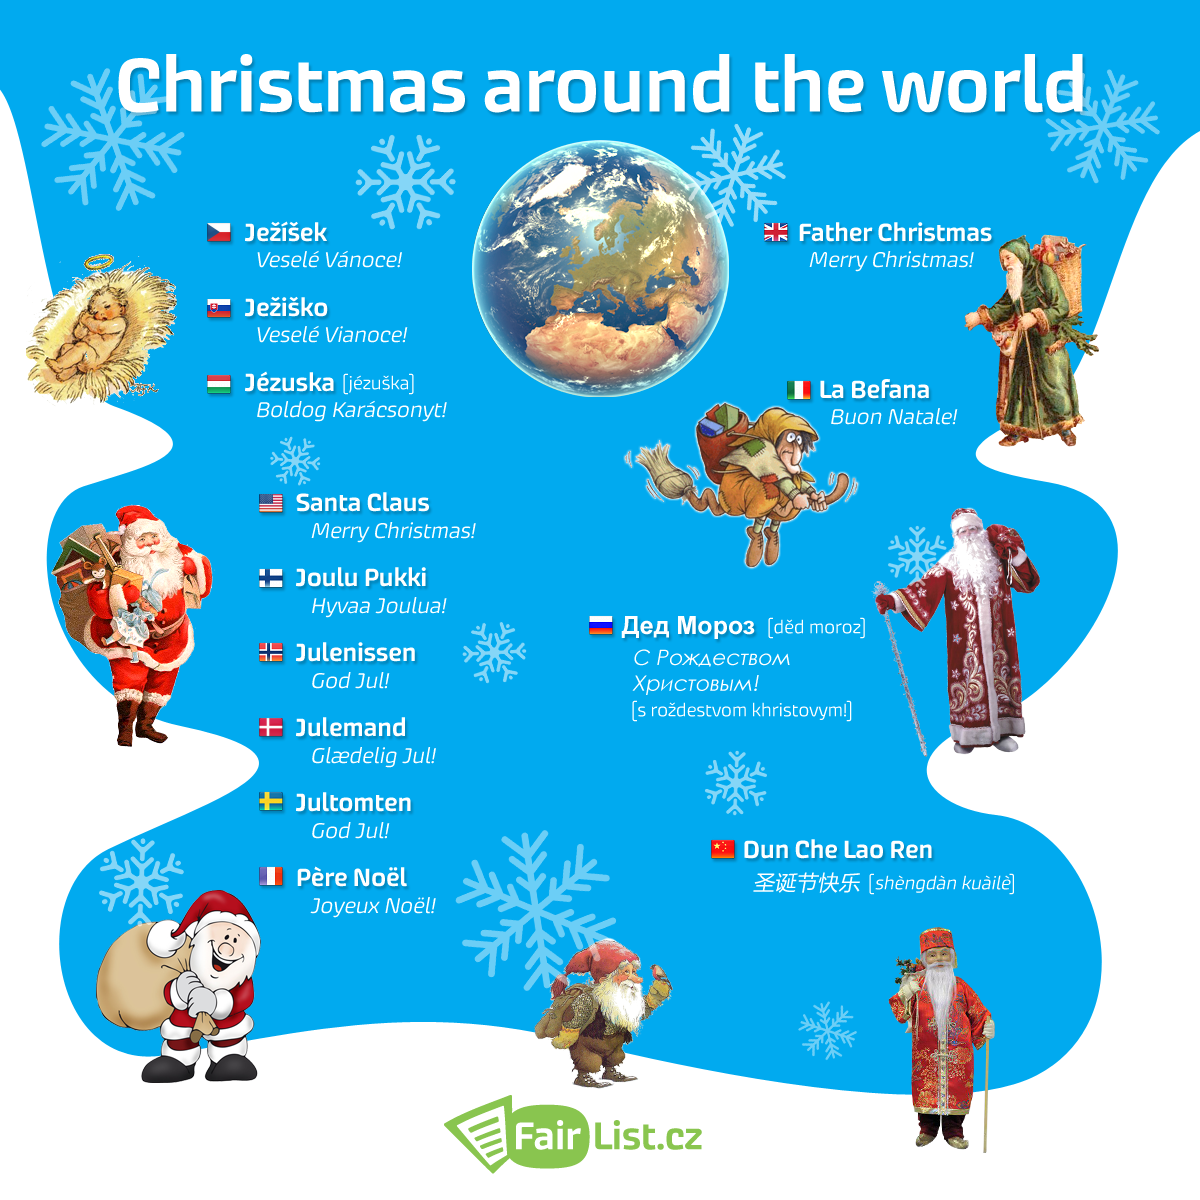 fairlist-christmas-around-the-world